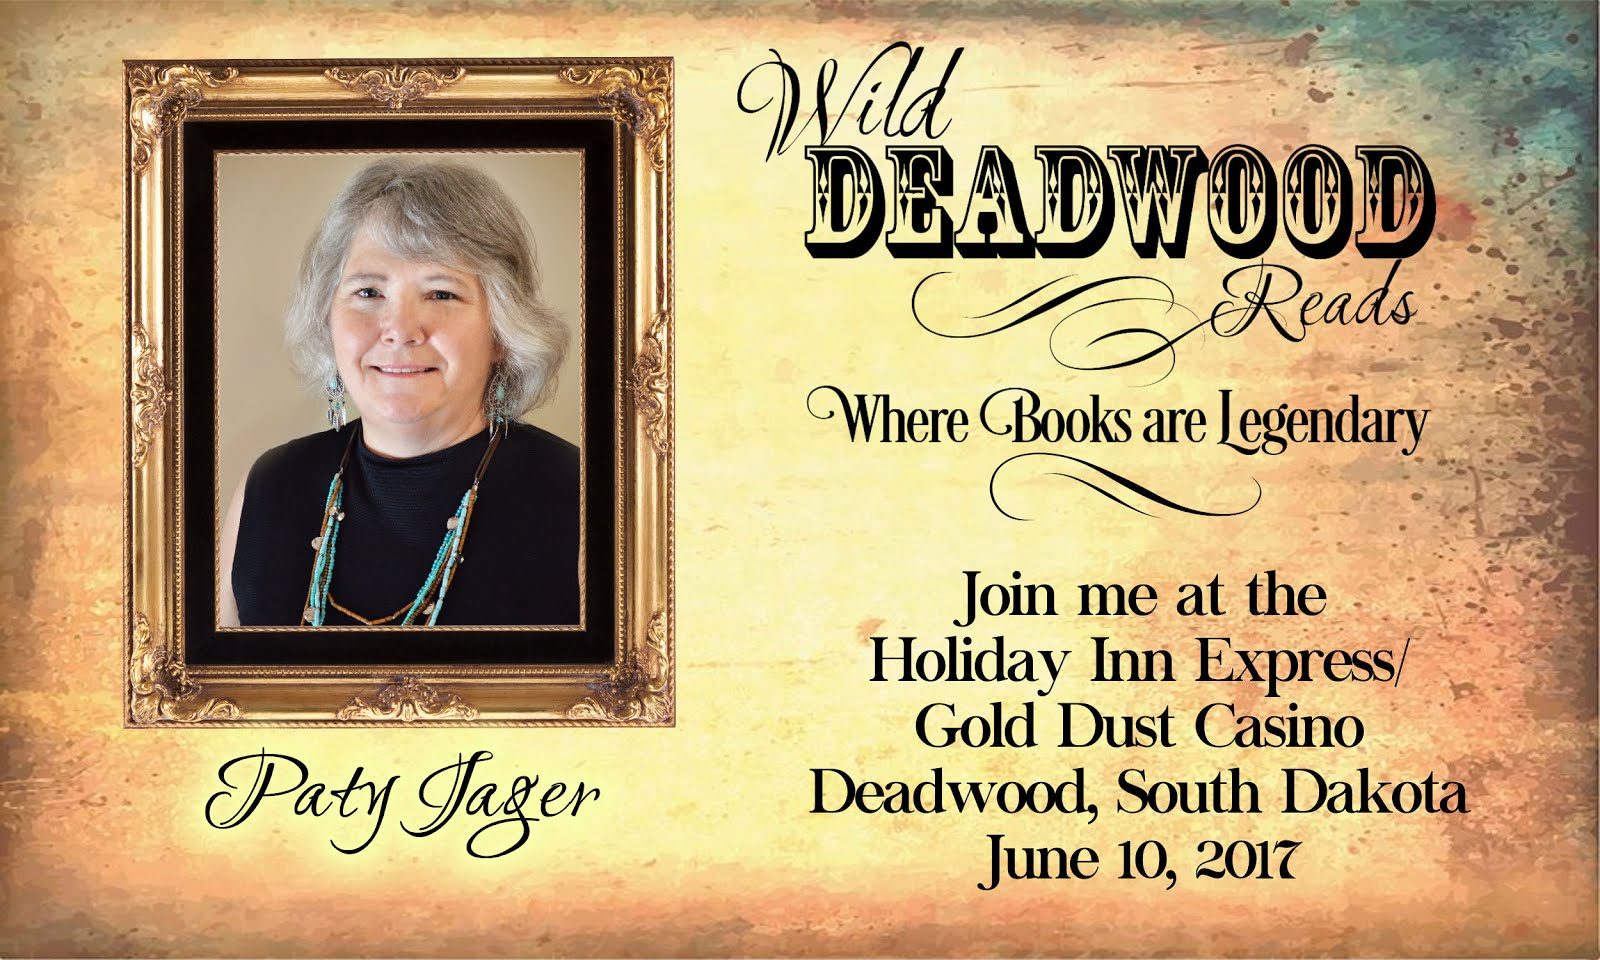 A Multi-Author Signing Event!